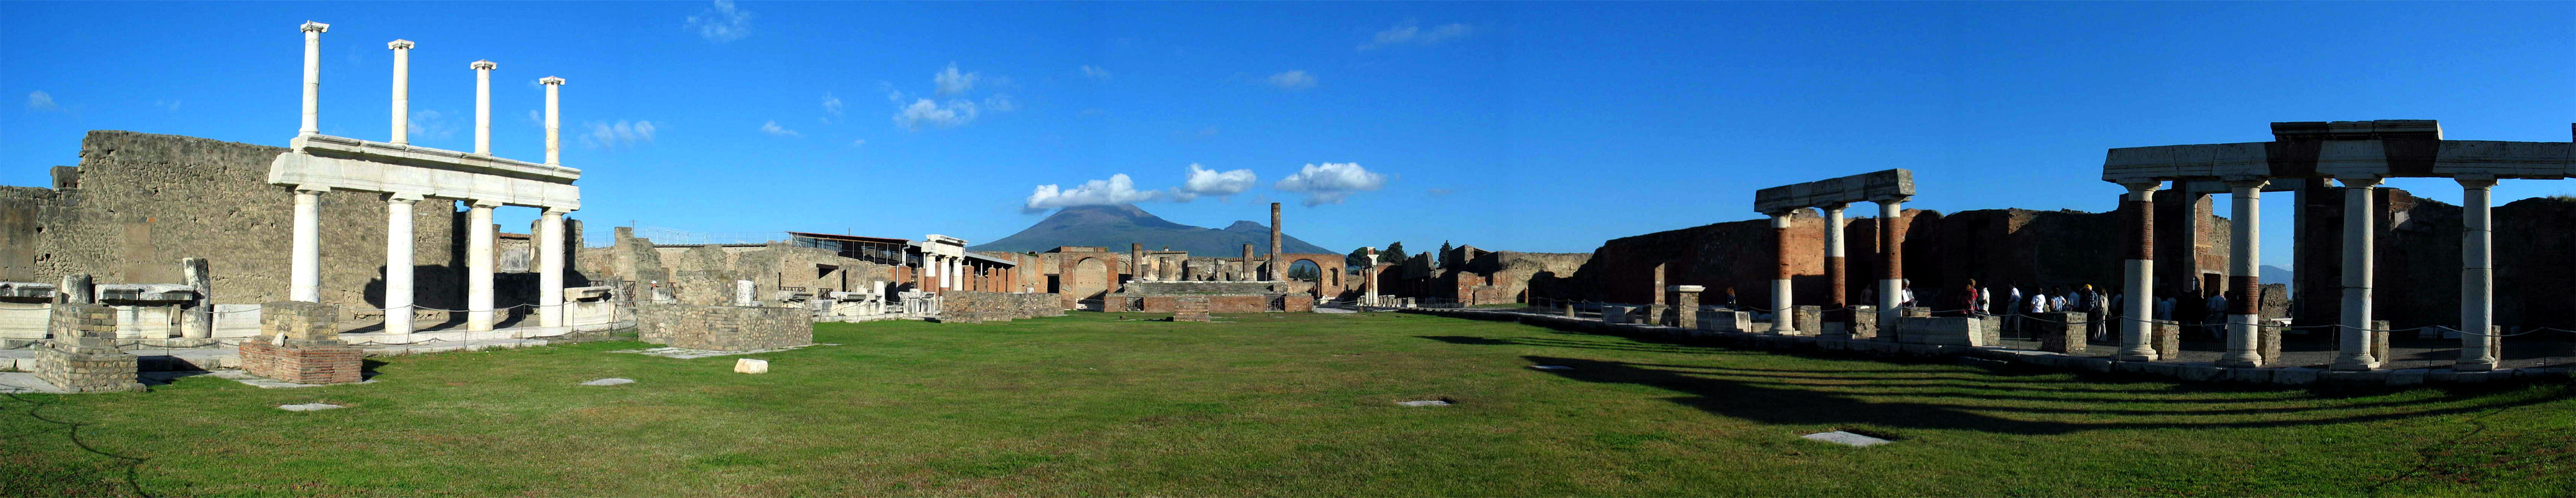 7 panorama Ancient city of Pompeii